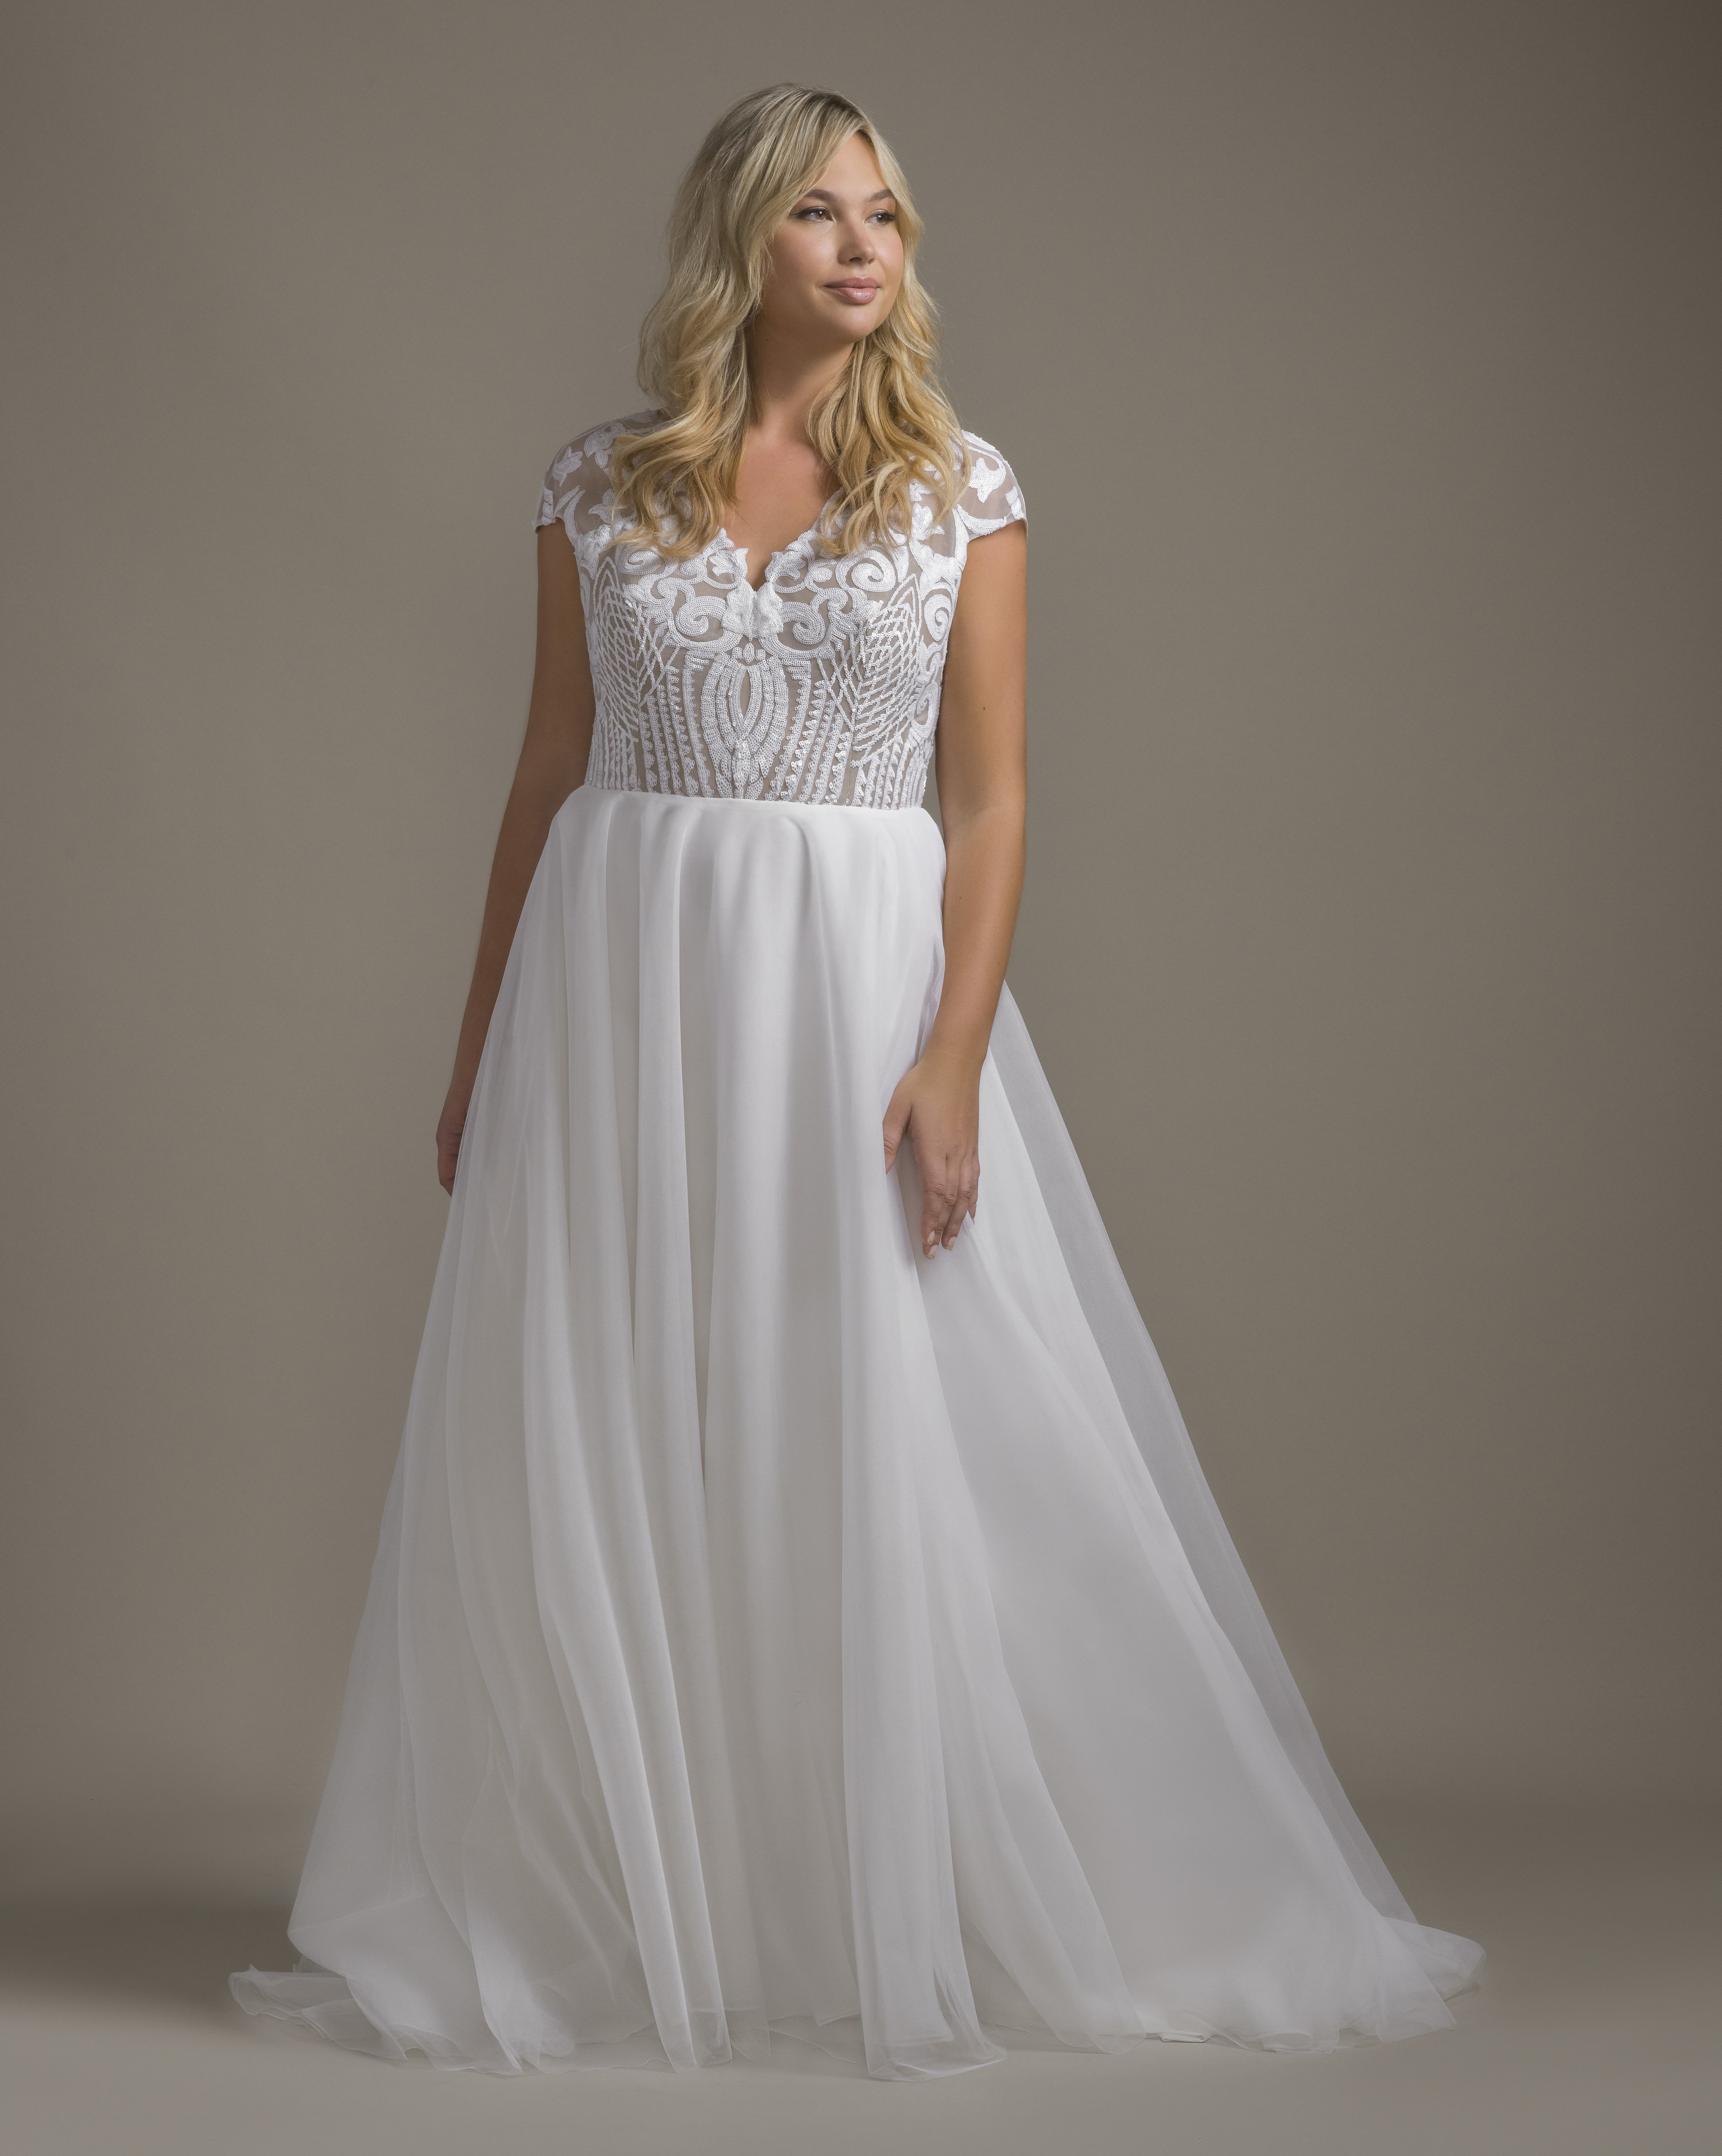 c5578314c0d Bridal Gowns and Wedding Dresses by JLM Couture - Style 1753 Dakota